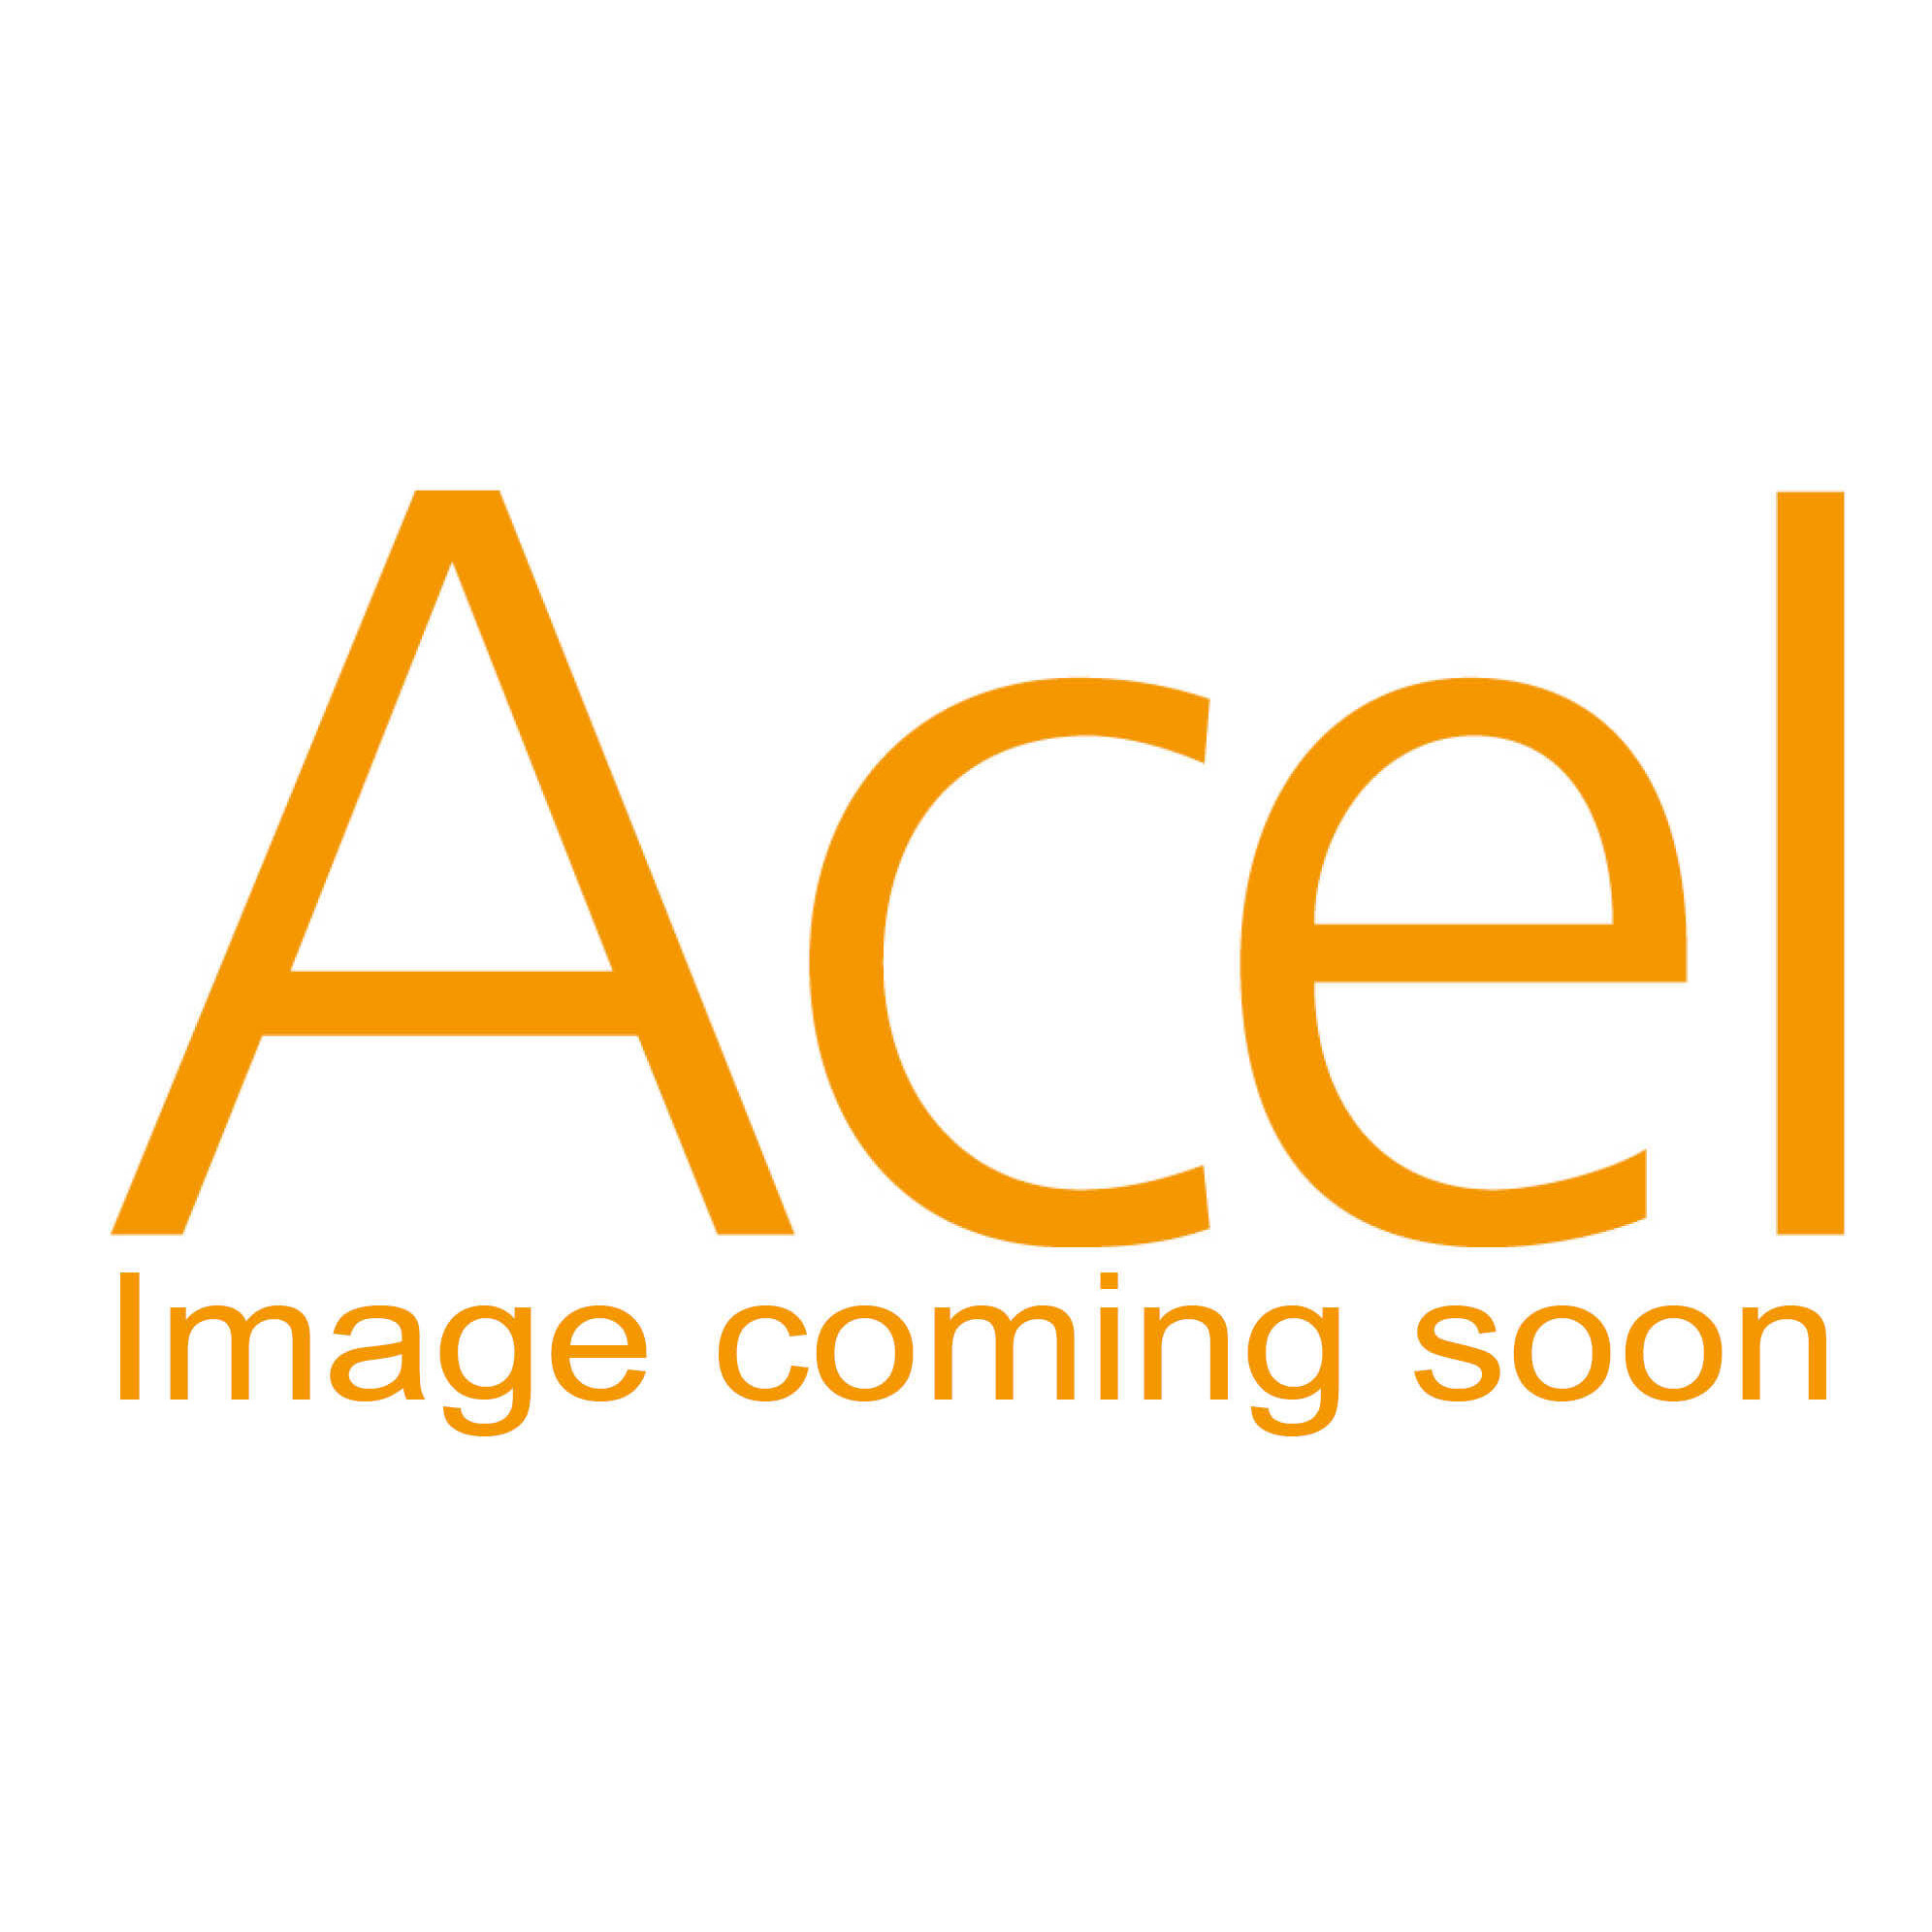 Self Adhesive Vinyl labels - Warning multiple supplies label - 130 x 60mm Pk10